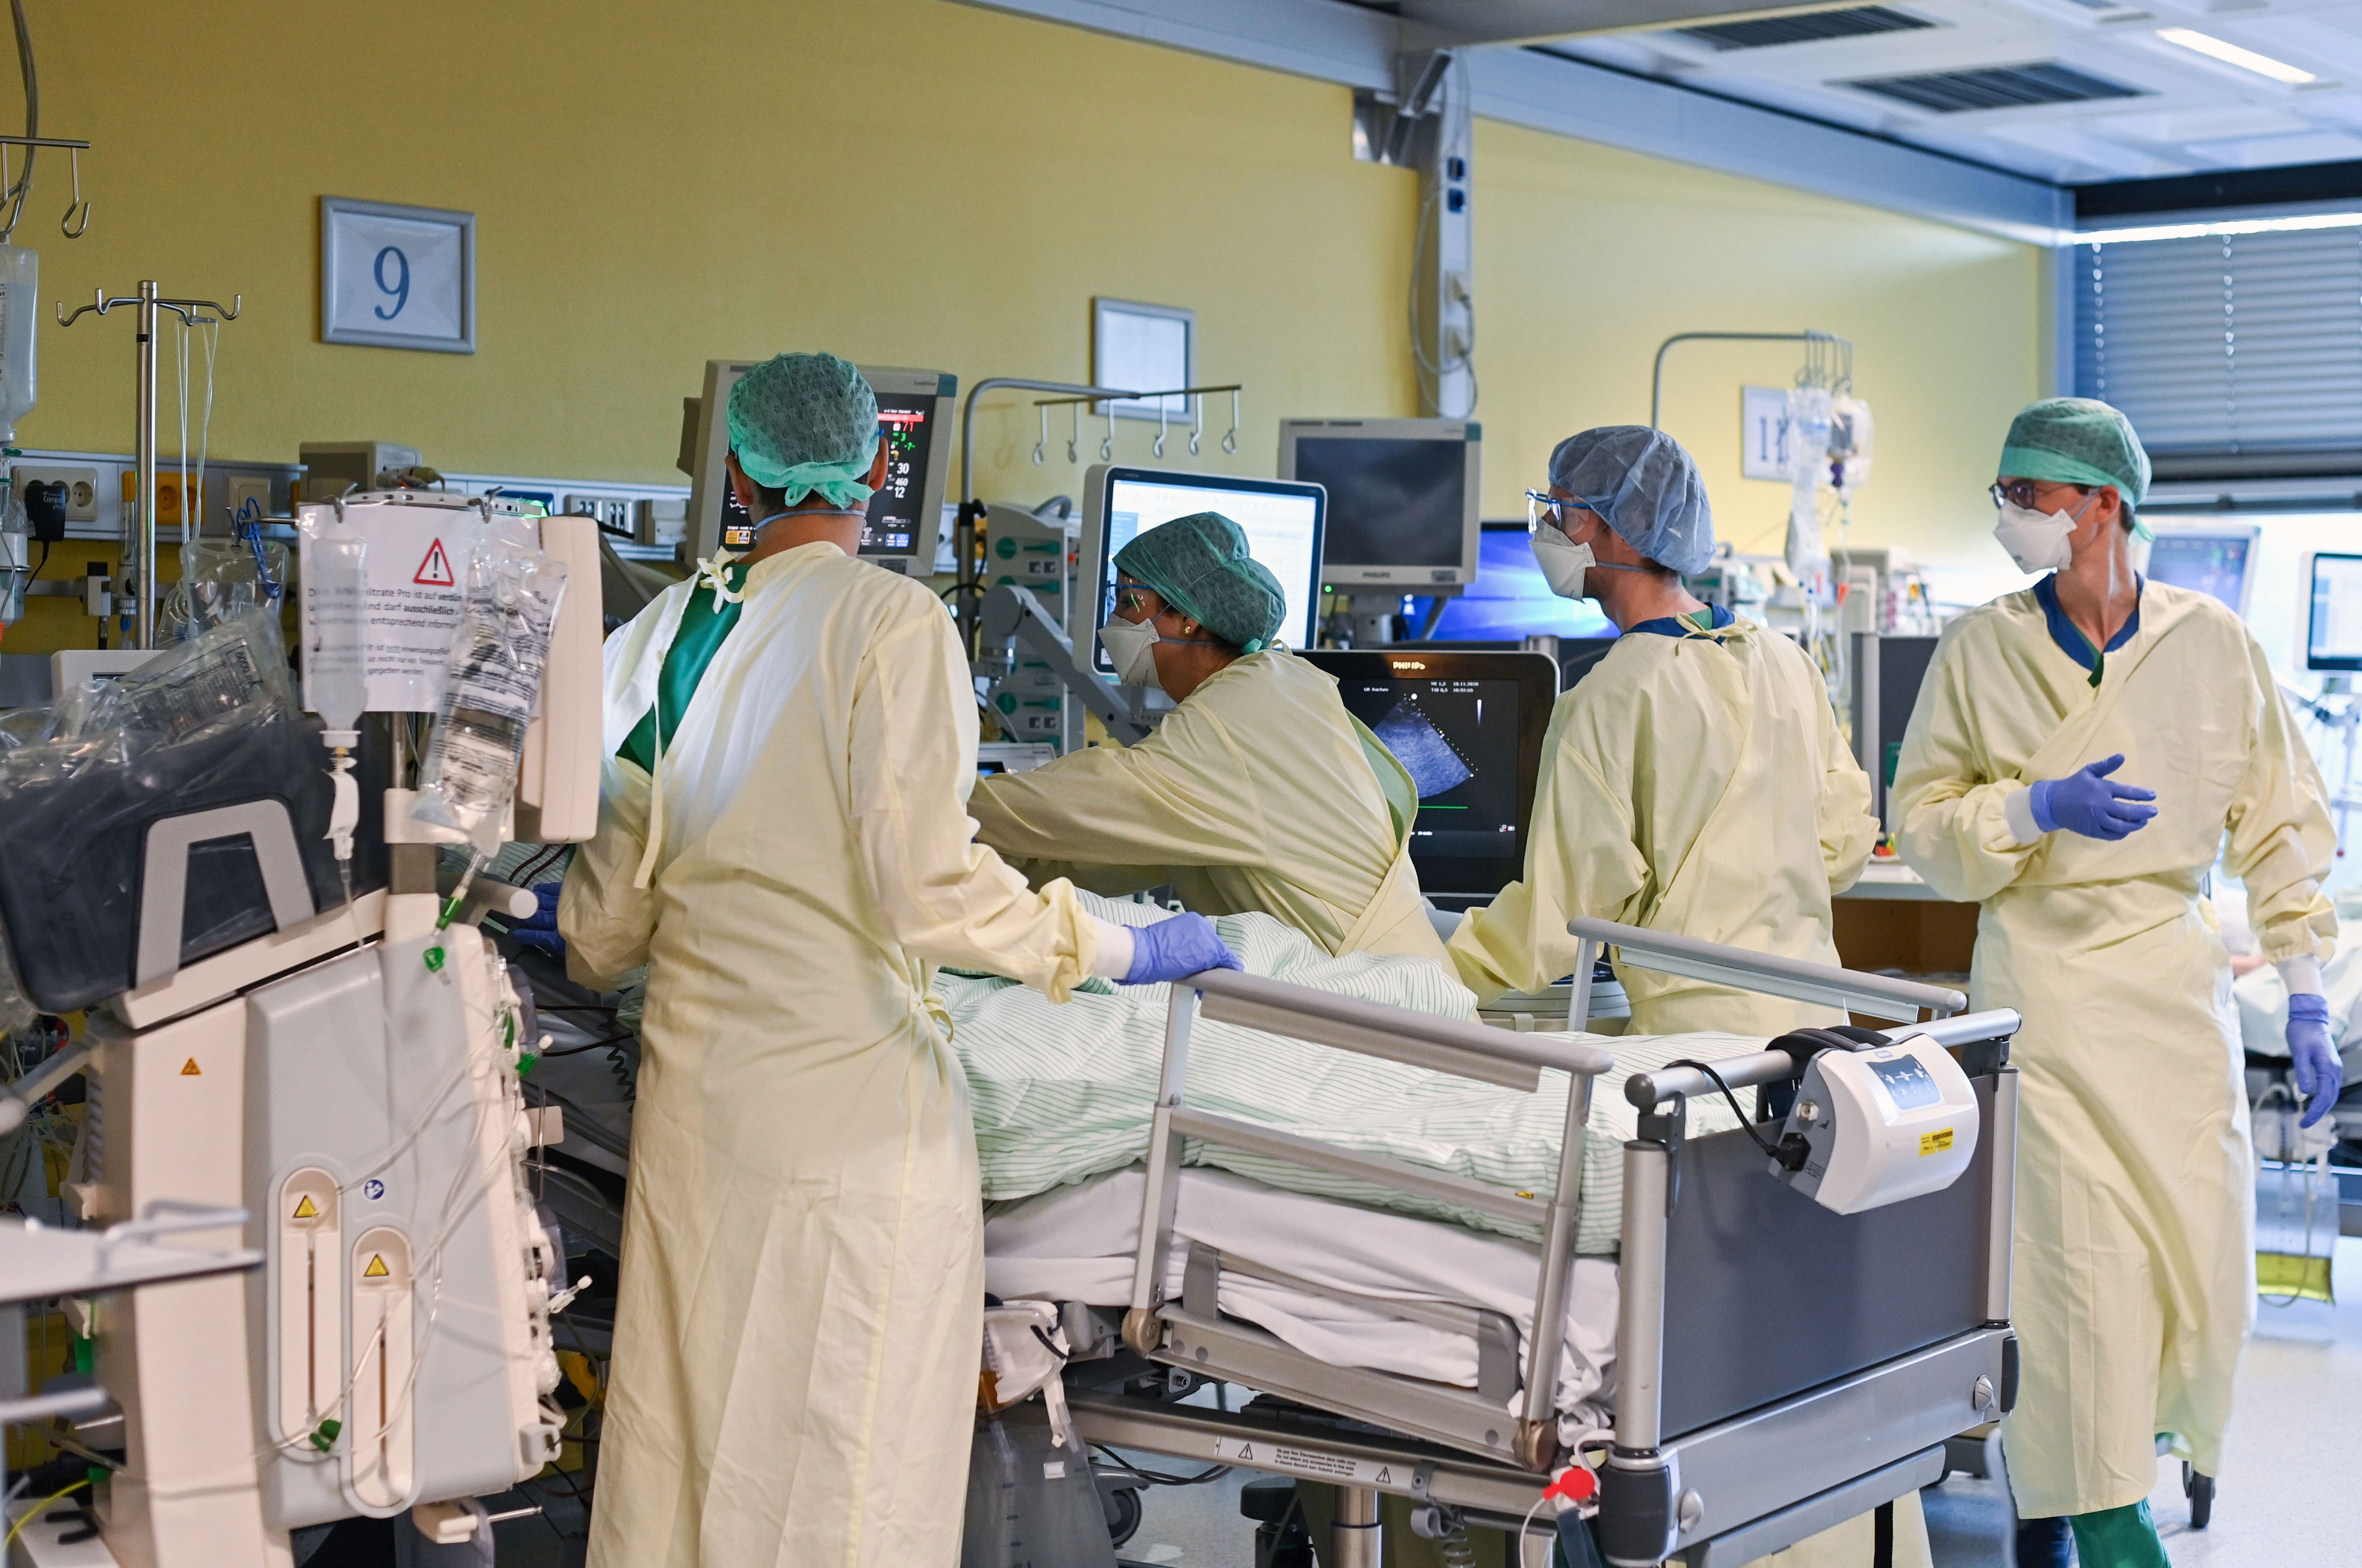 Medical personnel at a hospital in Aachen, Germany, examine a Covid-19 patient in the intensive care unit on November 10.